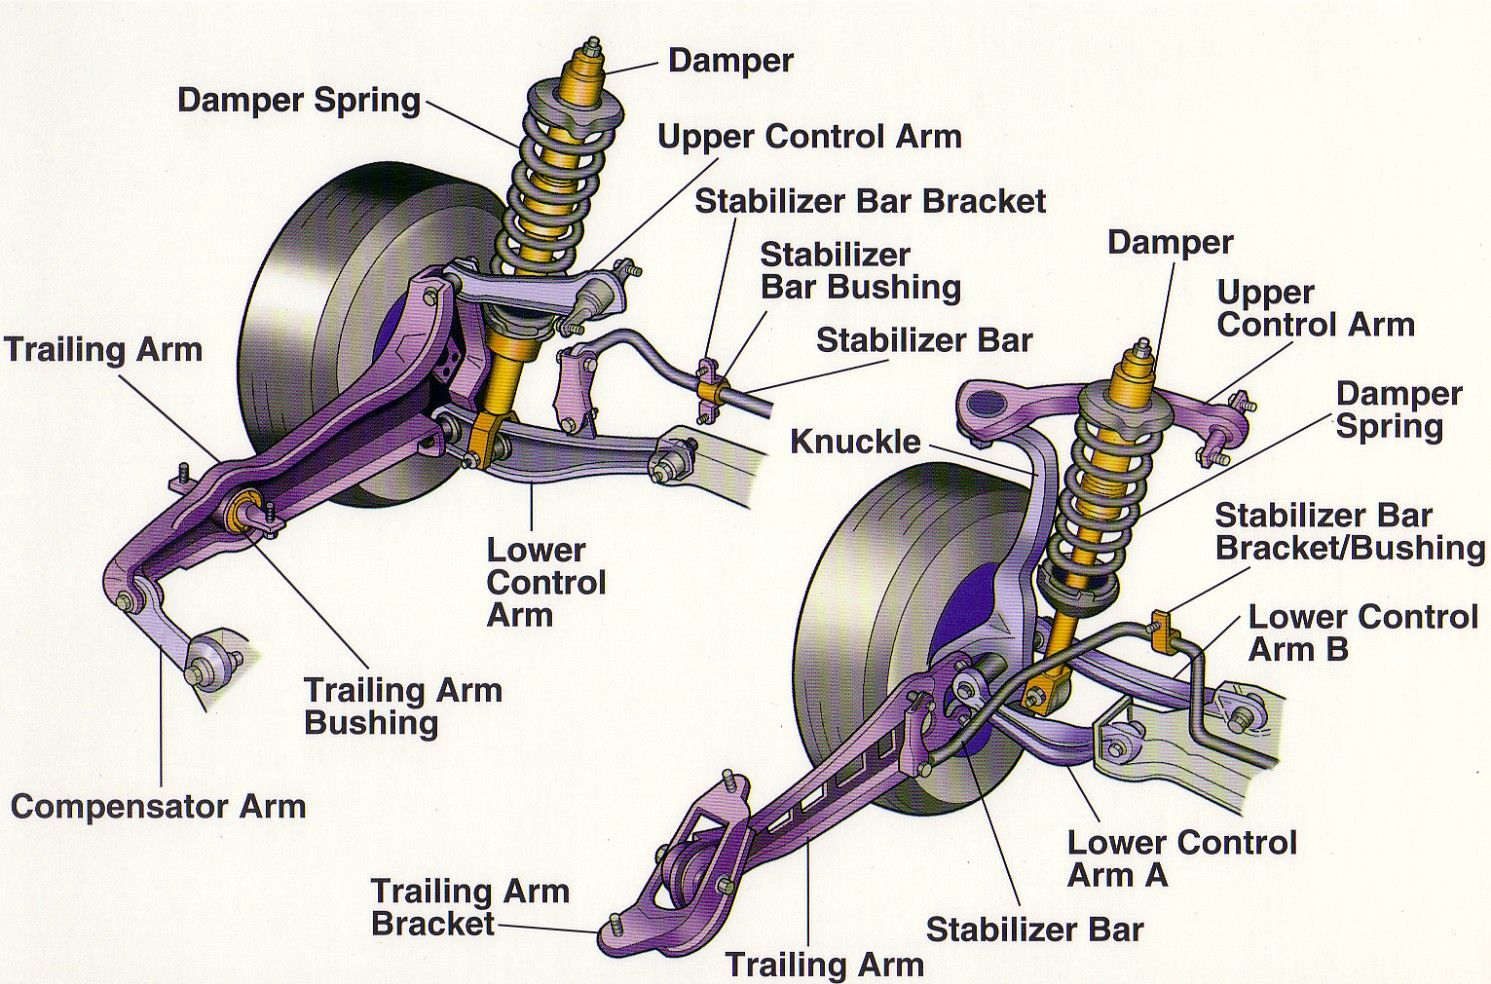 basic car part diagrams - Google Search | Cars | Pinterest | Diagram ...